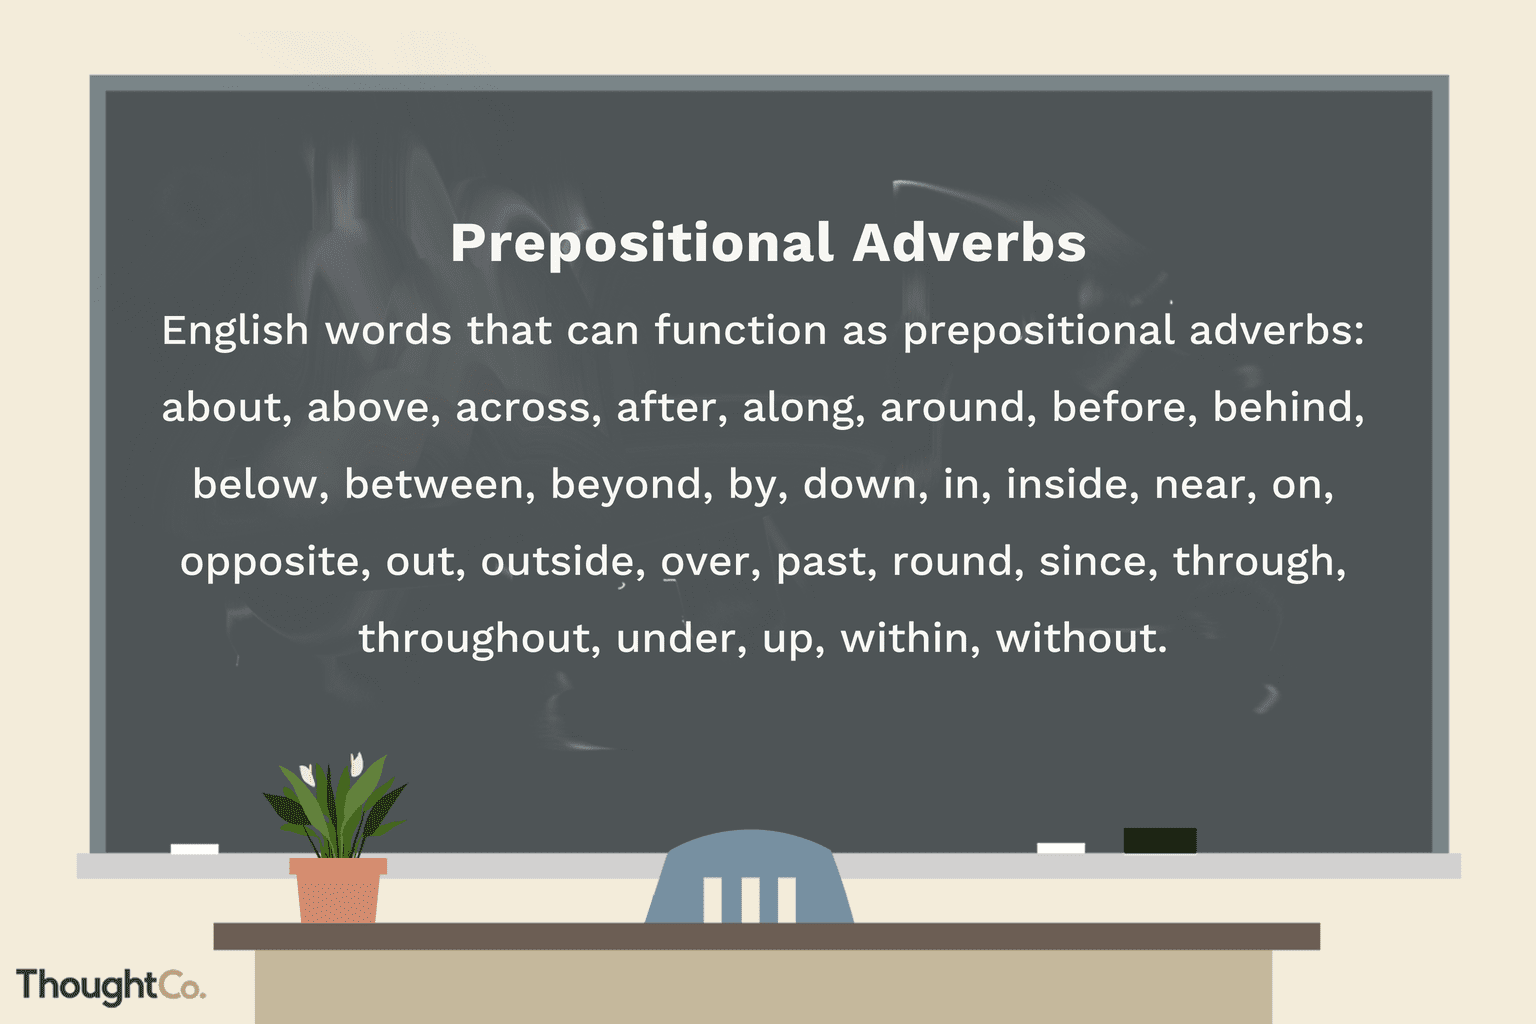 Definition And Examples Of Prepositional Adverbs